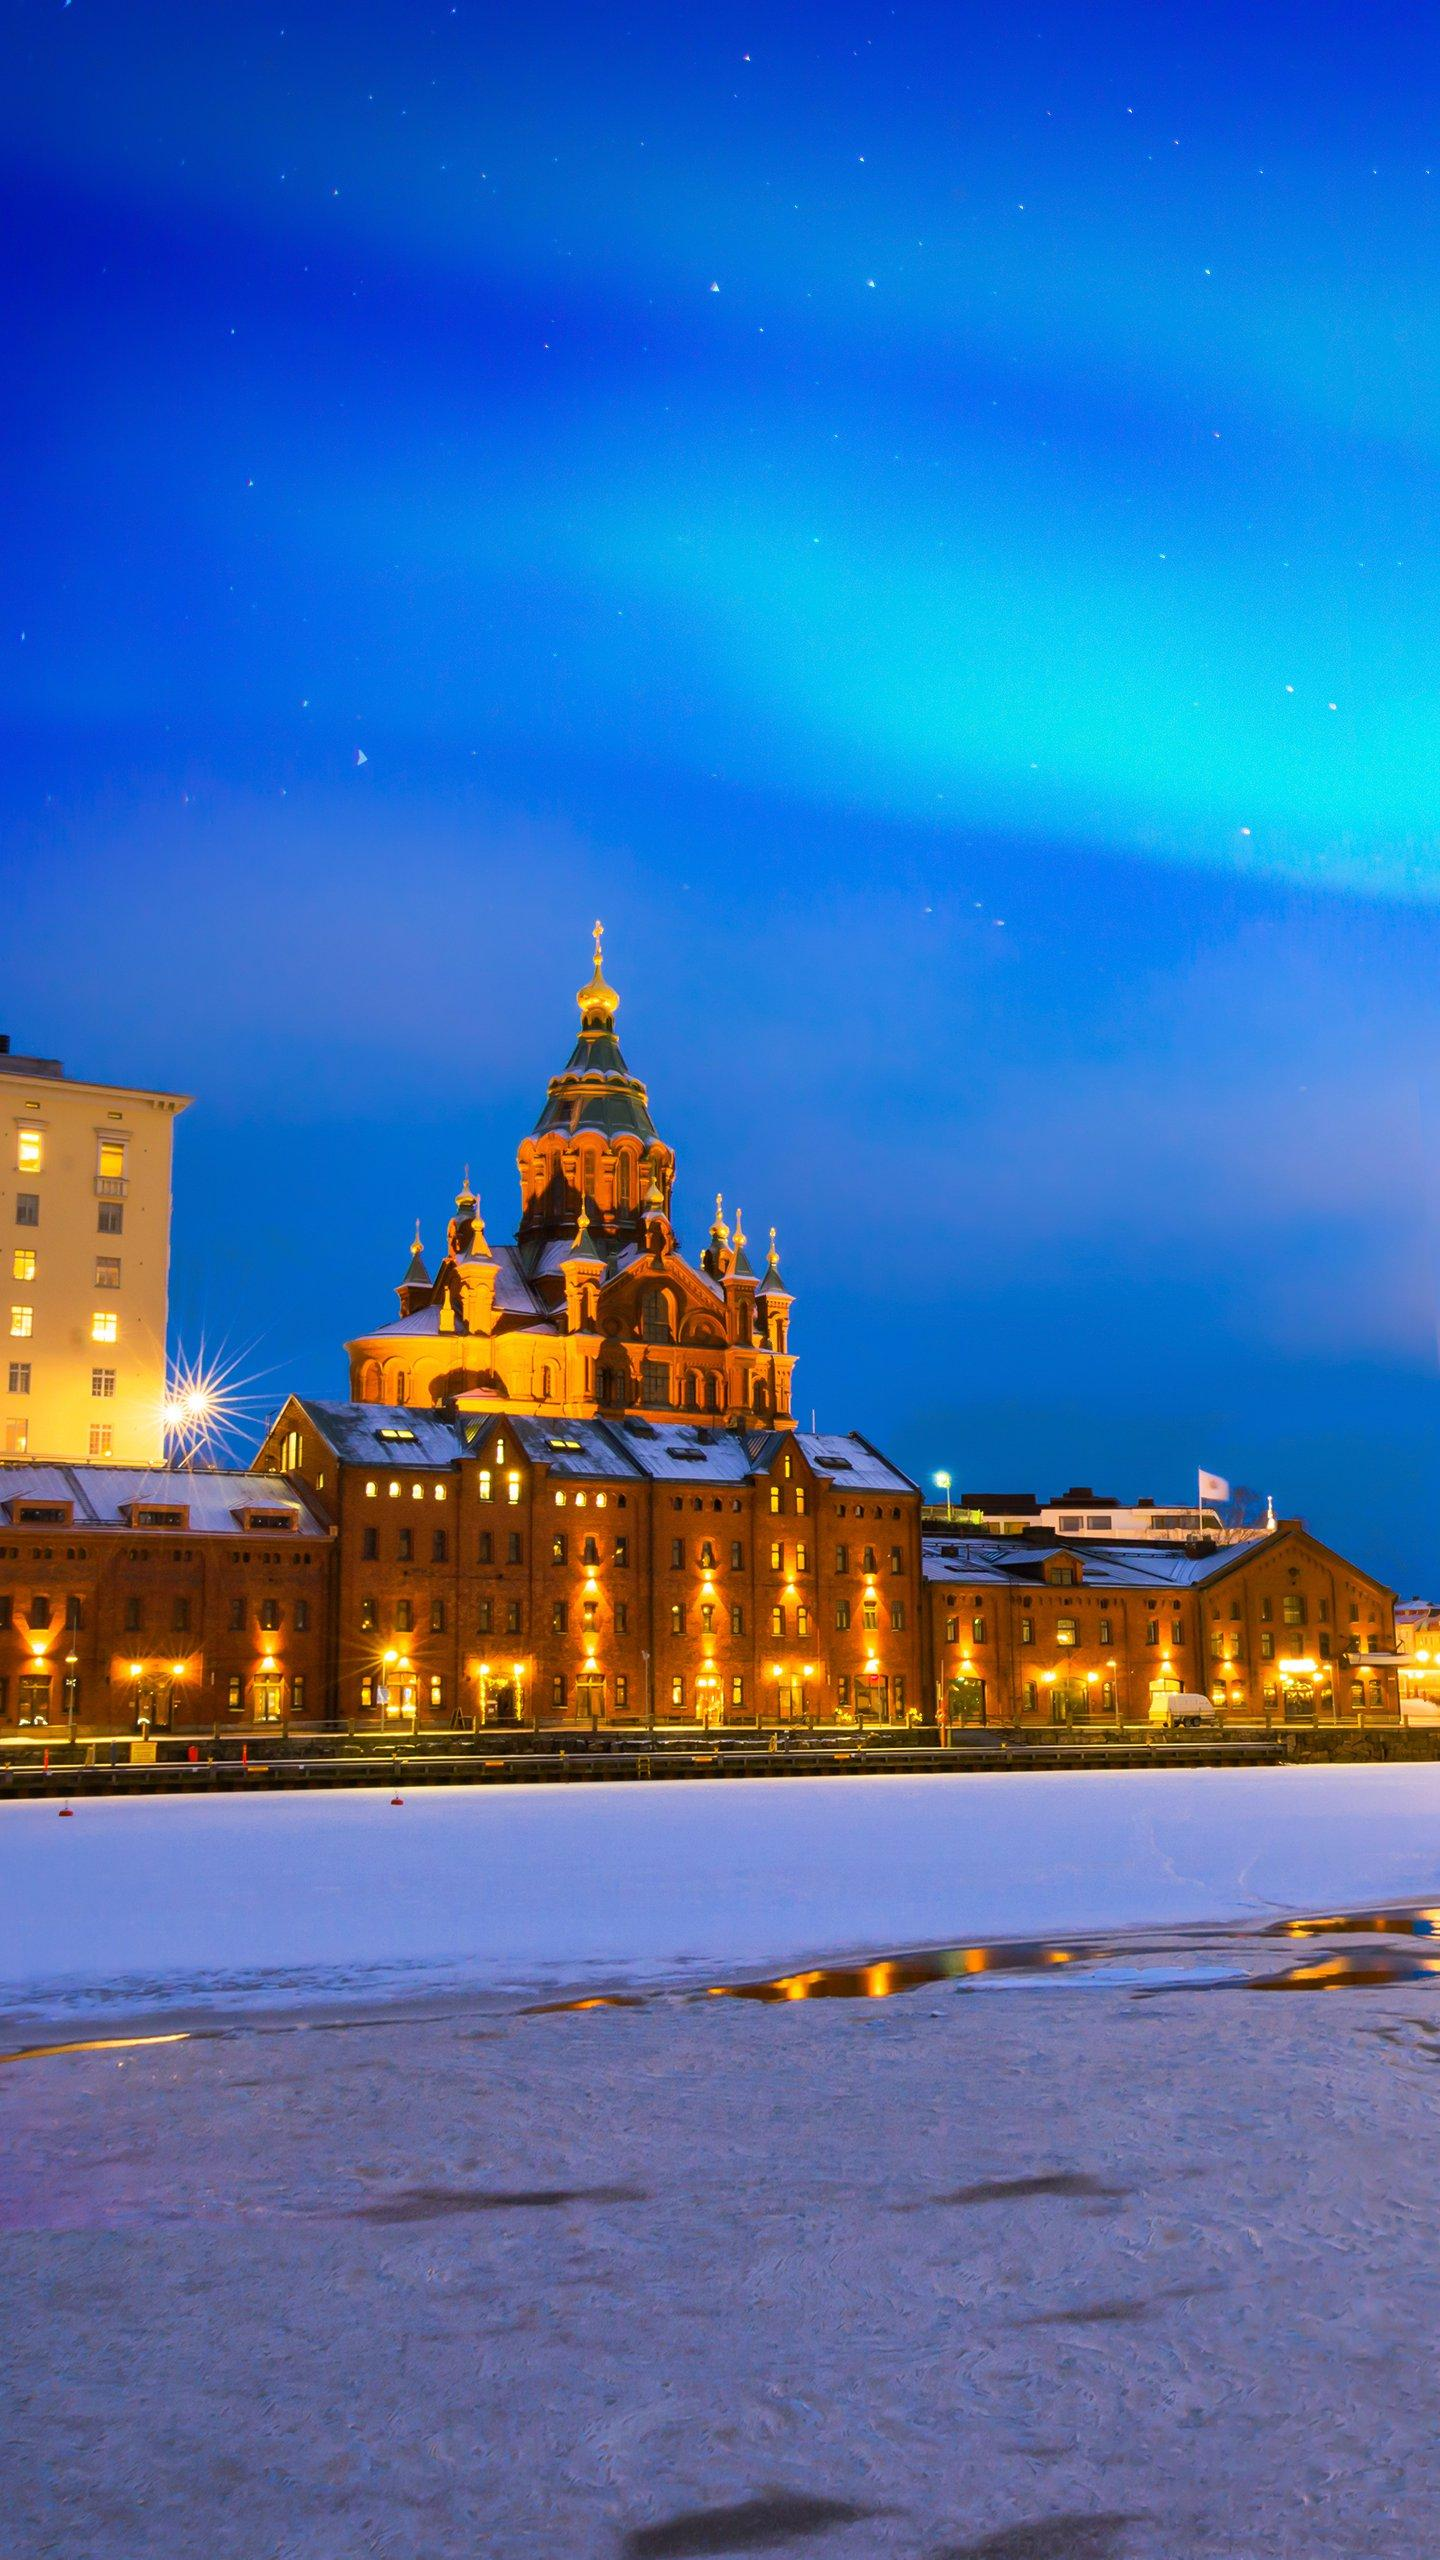 Finland - Helsinki. A city where classical beauty and modern civilization are integrated, has been rated as one of the most liveable cities in the world for many years.